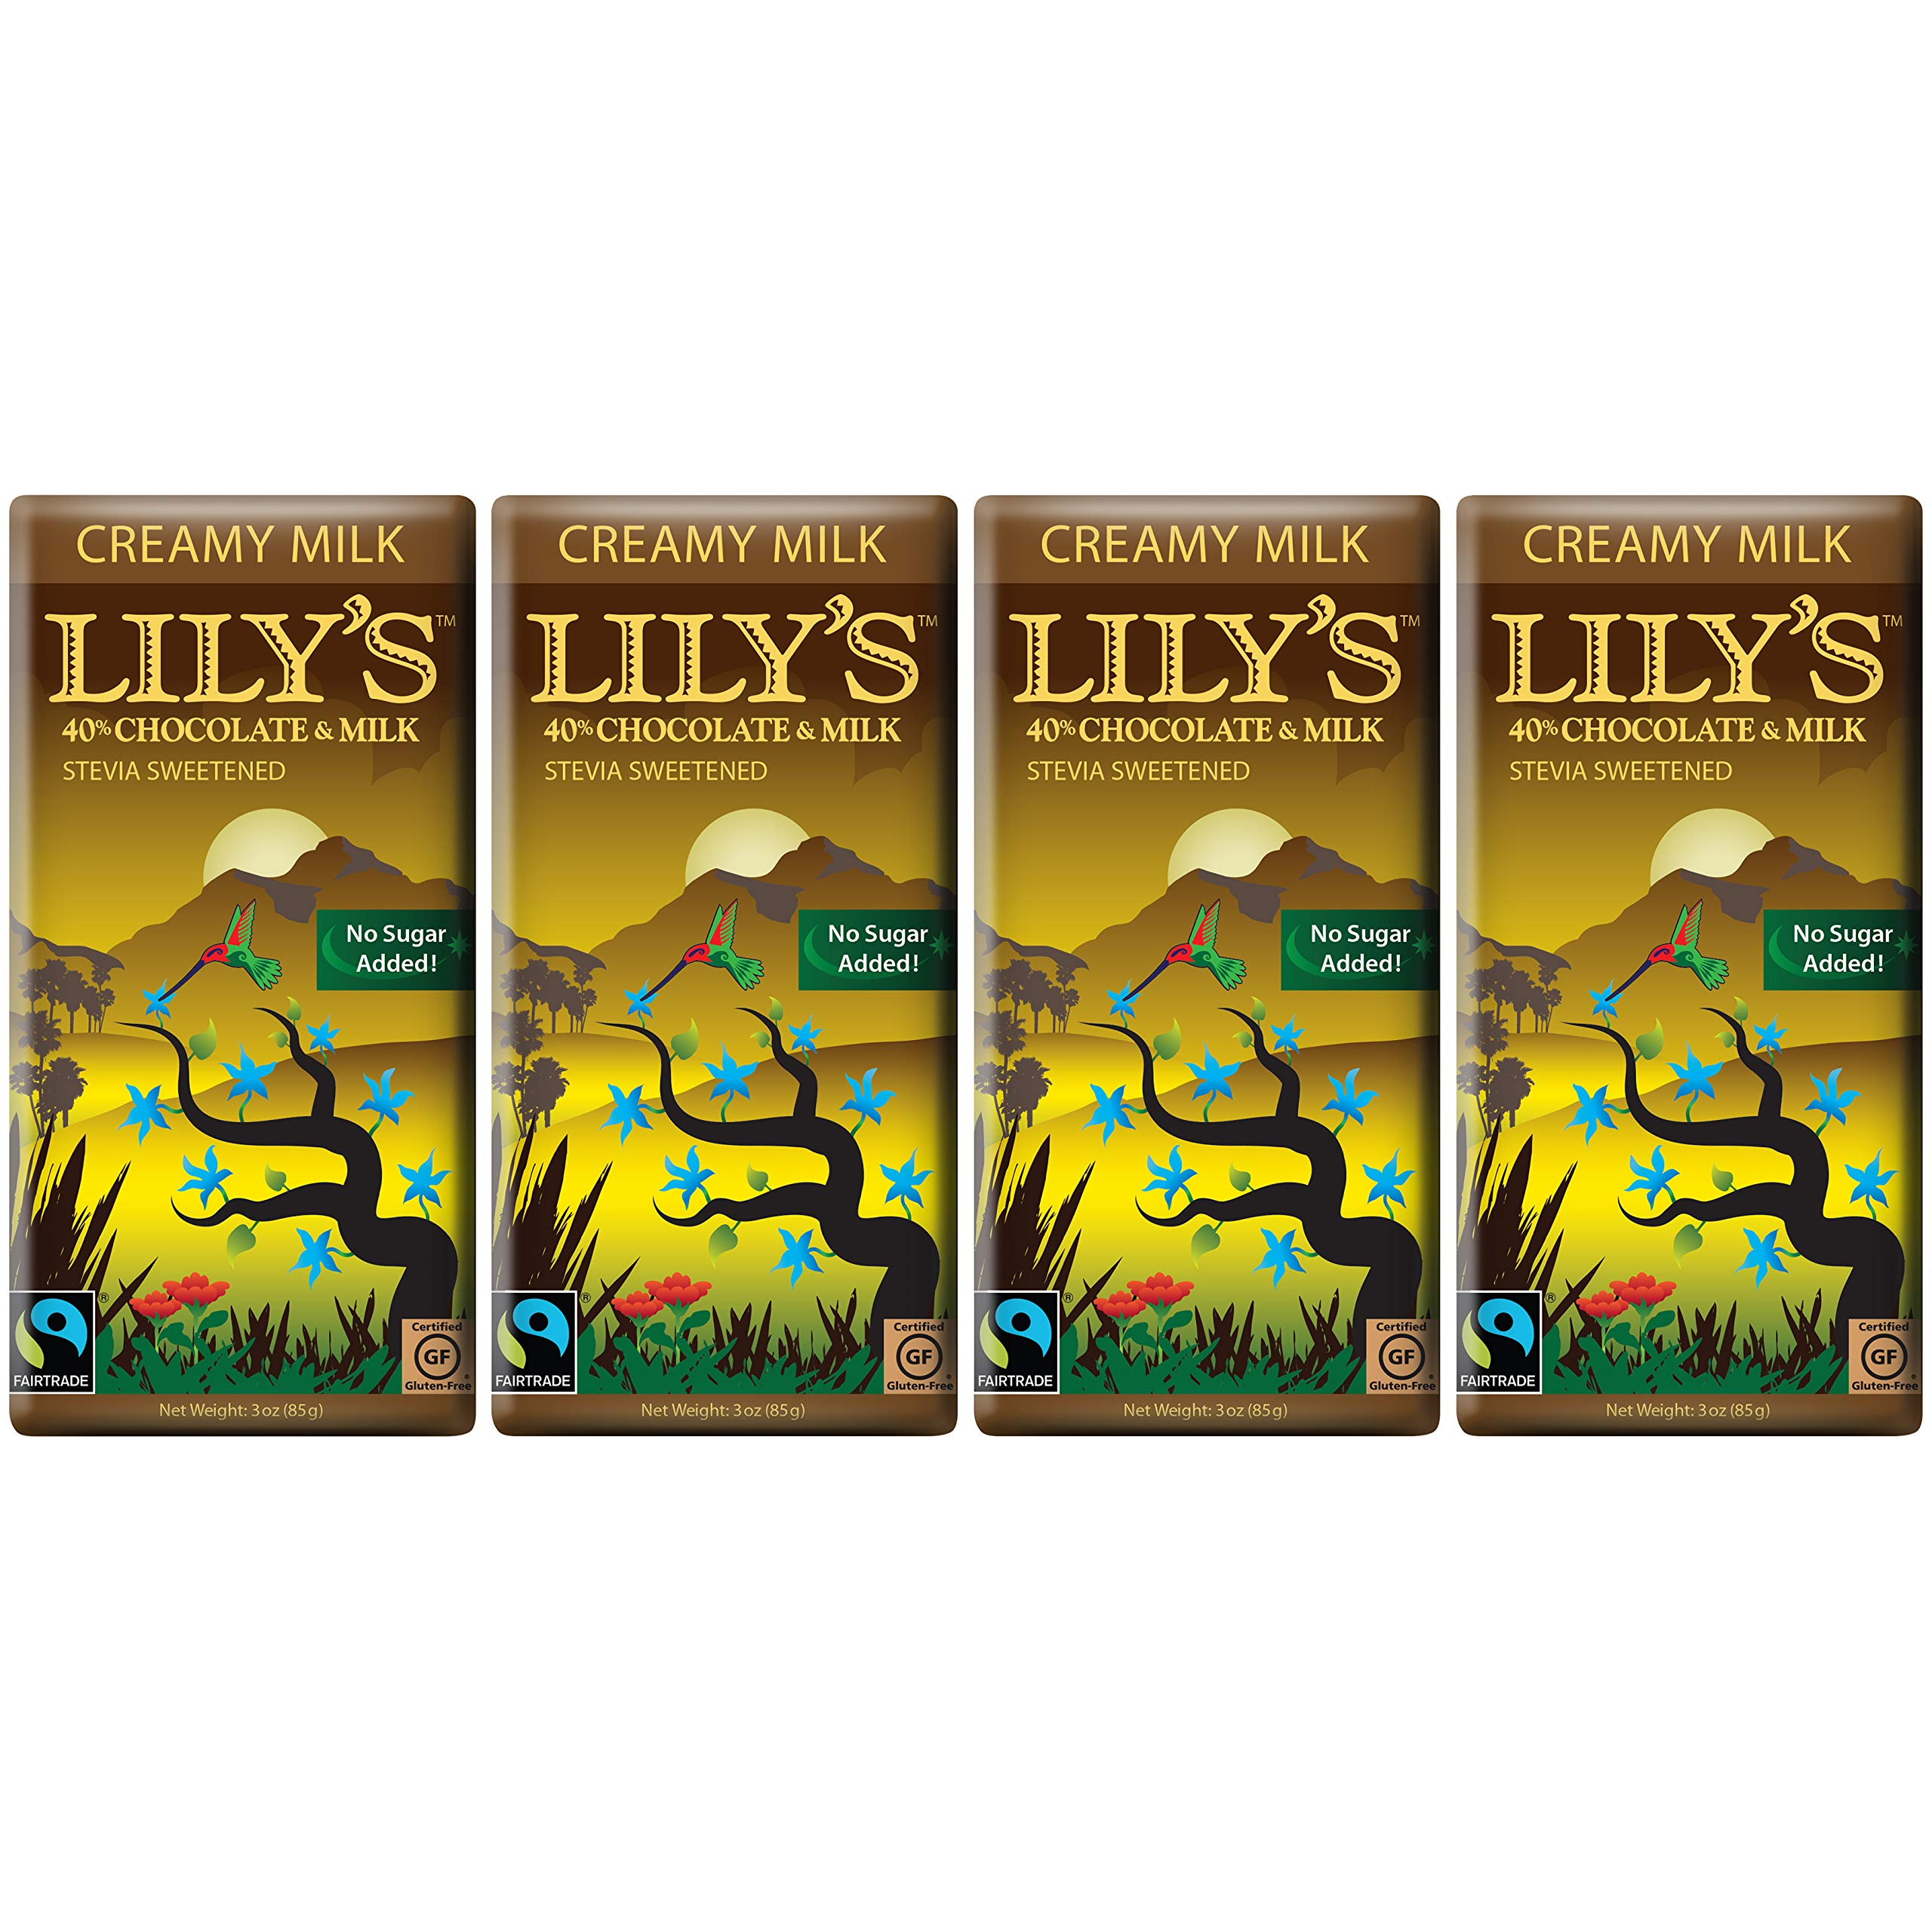 Creamy Milk Chocolate Bar by Lily's Sweets   Stevia Sweetened, No Added Sugar, Low-Carb, Keto Friendly   40% Cacao   Fair Trade, Gluten-Free & Non-GMO   3 ounce, 4-Pack by Lily's (Image #1)